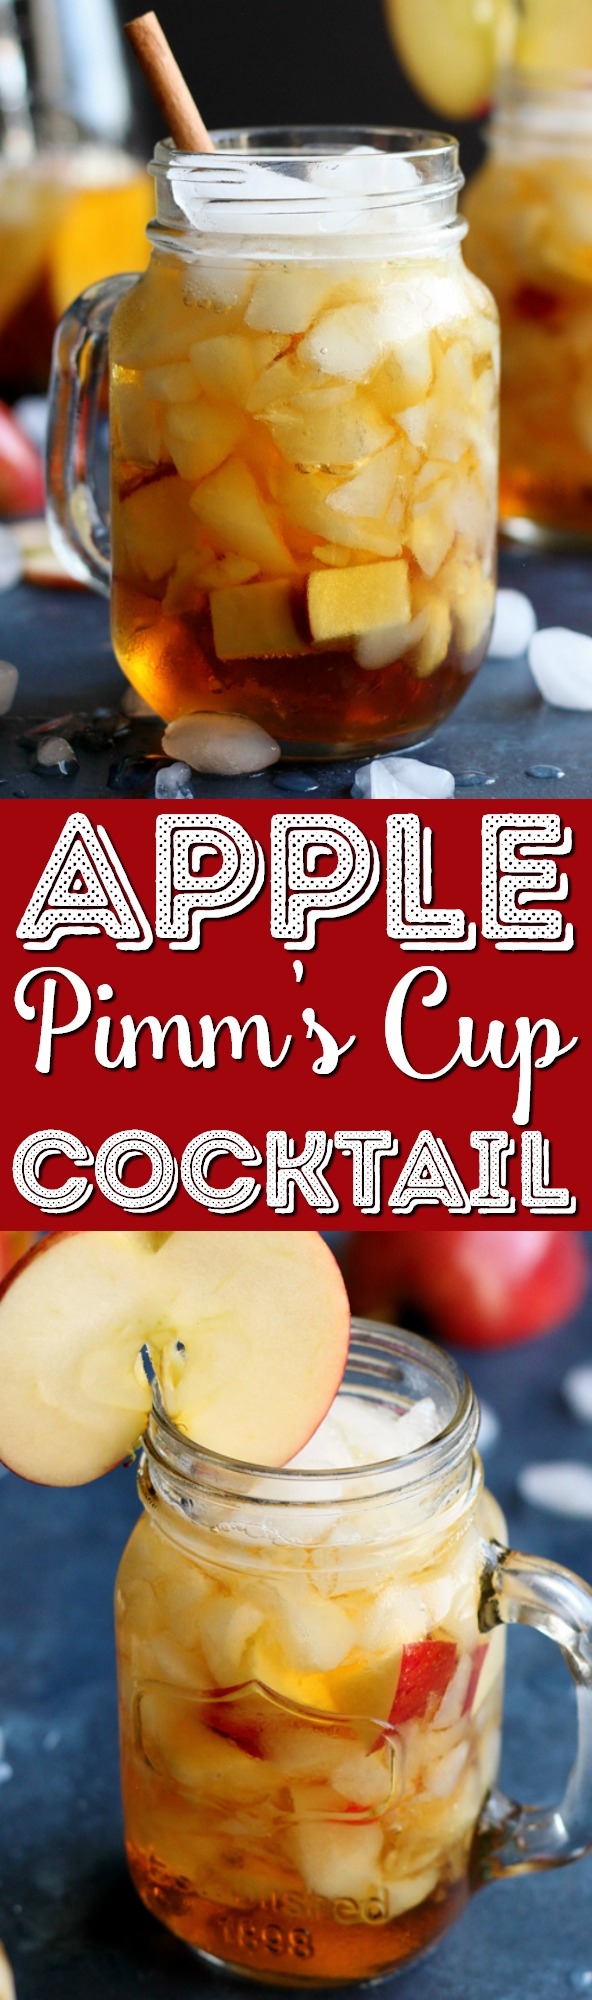 This Apple Pimm's Cup takes a twist on a popular summer cocktail using Fall flavor. This recipe can be easily scaled up to make a few pitchers, enough to serve a whole group of thirsty dinner guests. via @sugarandsoulco